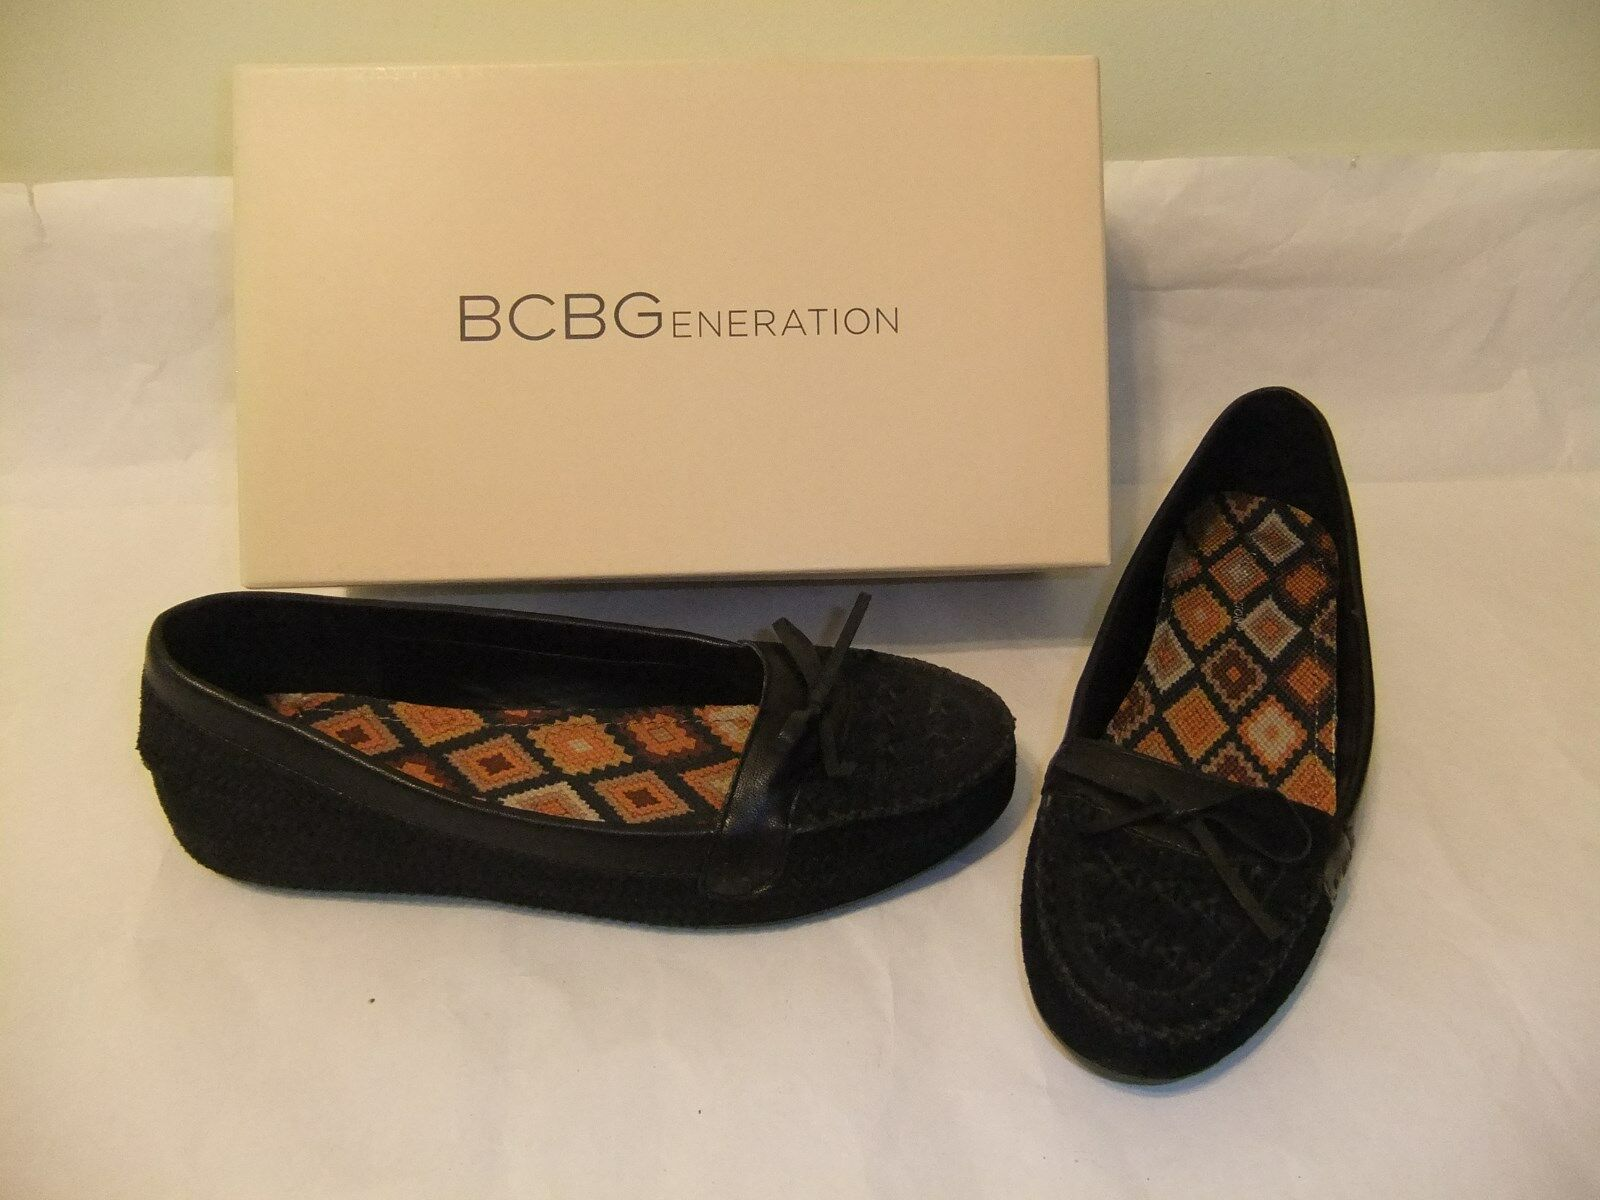 BCBGeneration Posey Black Suede Leather 10 Flat Loafer Moccasin Size 10 Leather NIB $80 fd6b96